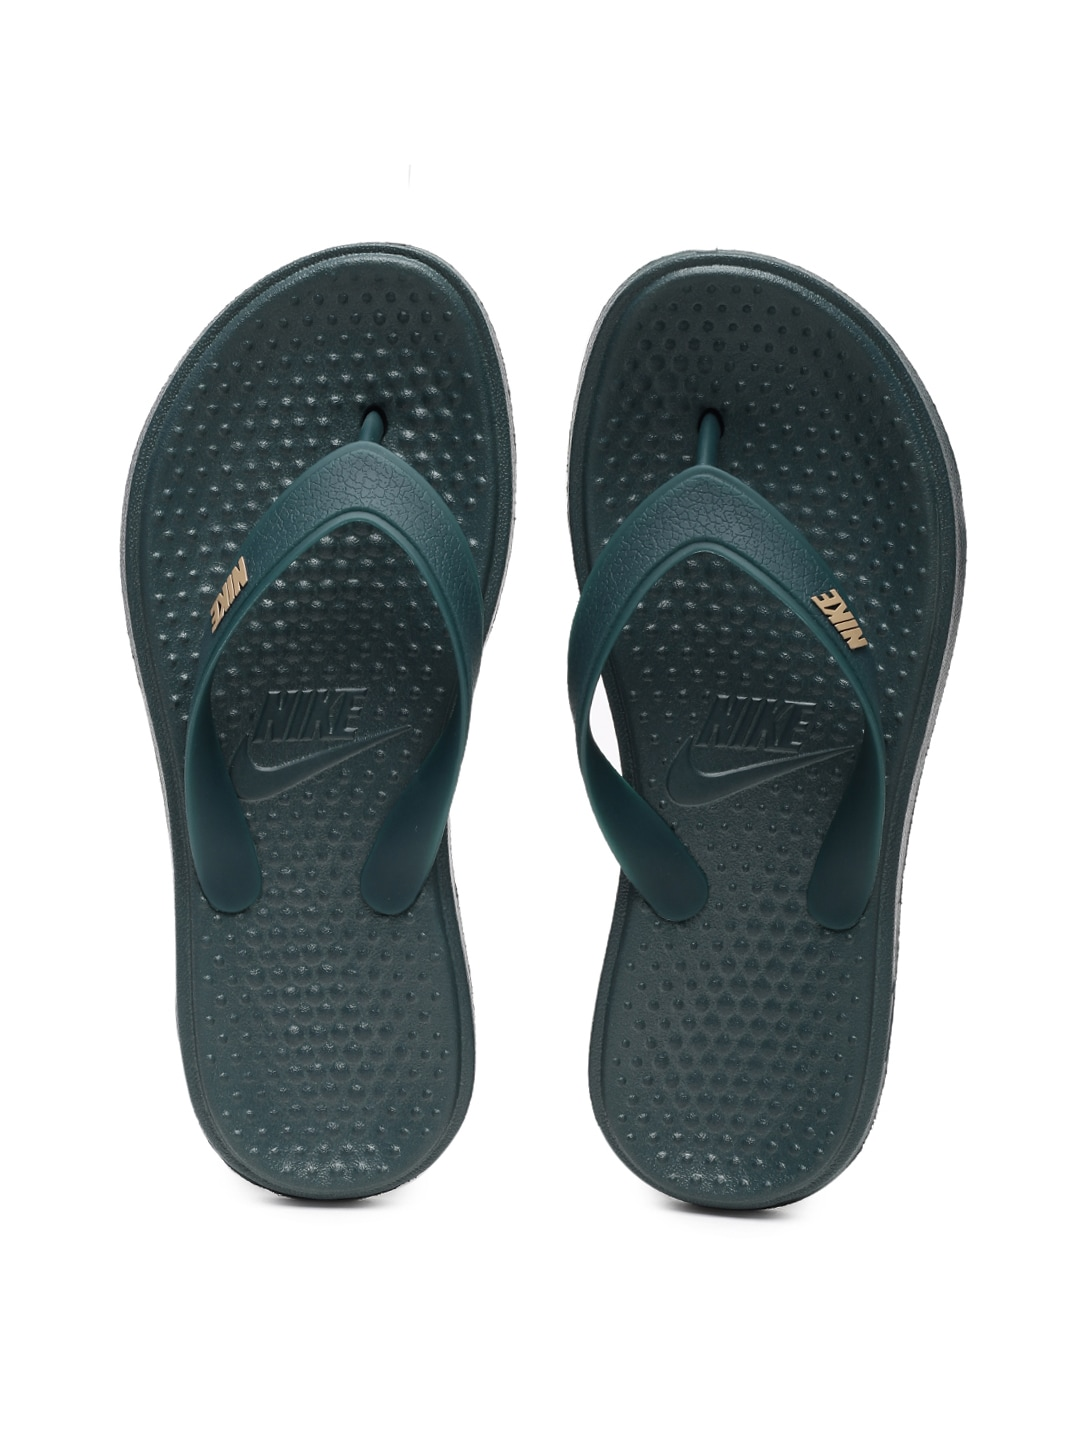 0dcac2a723f3 Nike Flip-Flops - Buy Nike Flip-Flops for Men Women Online